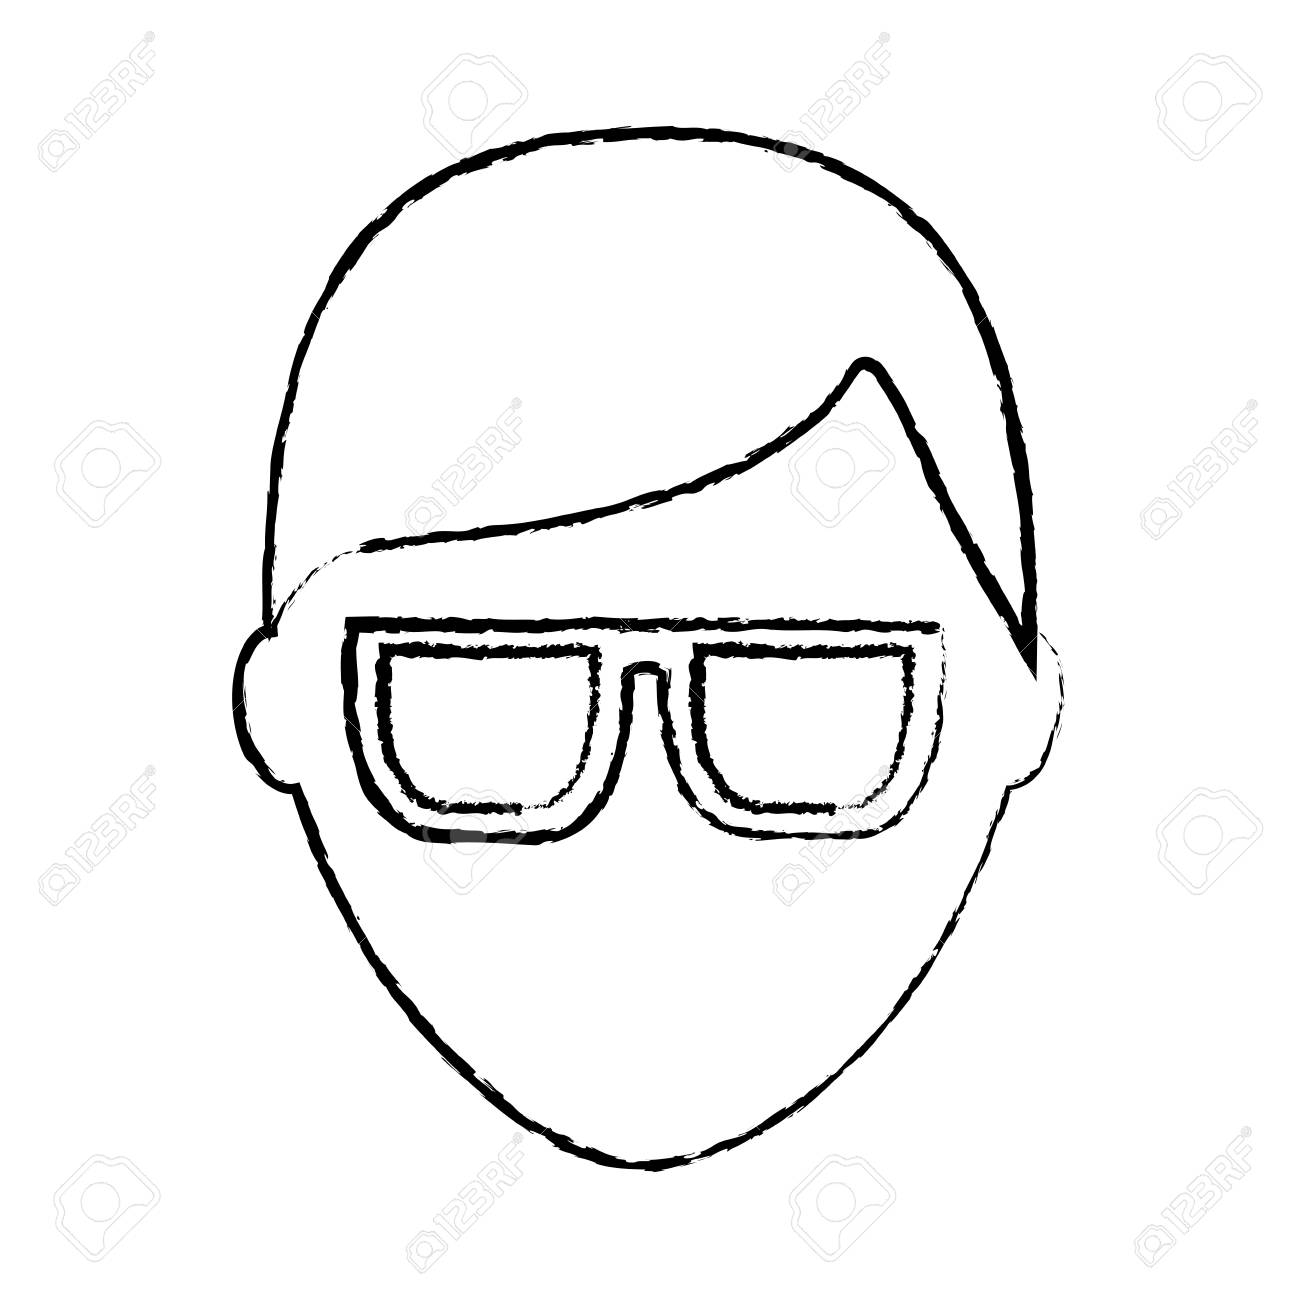 man with glasses avatar icon image vector illustration design